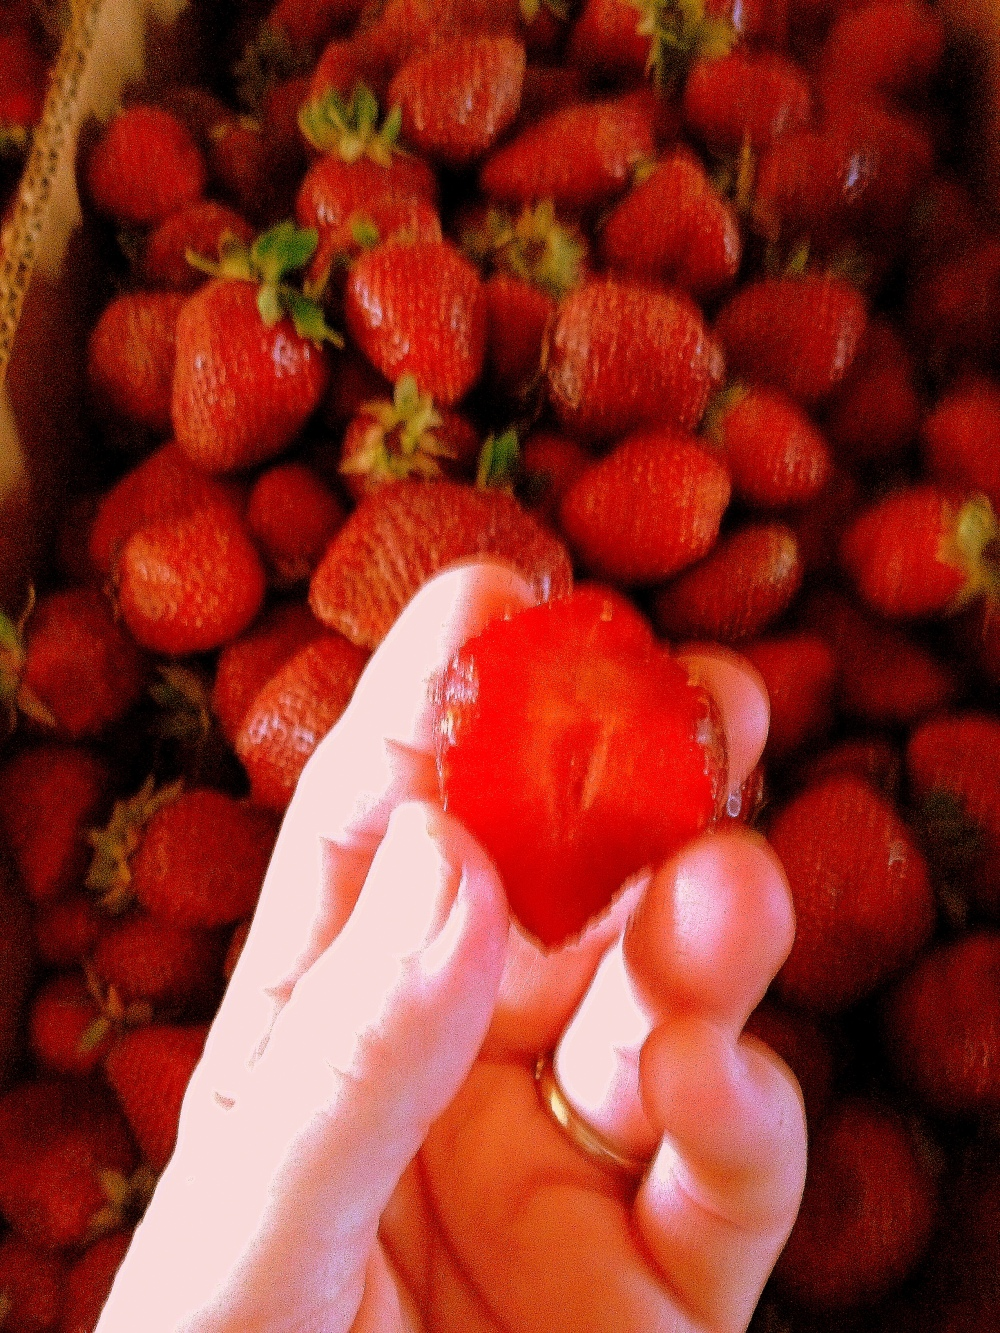 A ripe strawberry, locally grown, is red through and through.